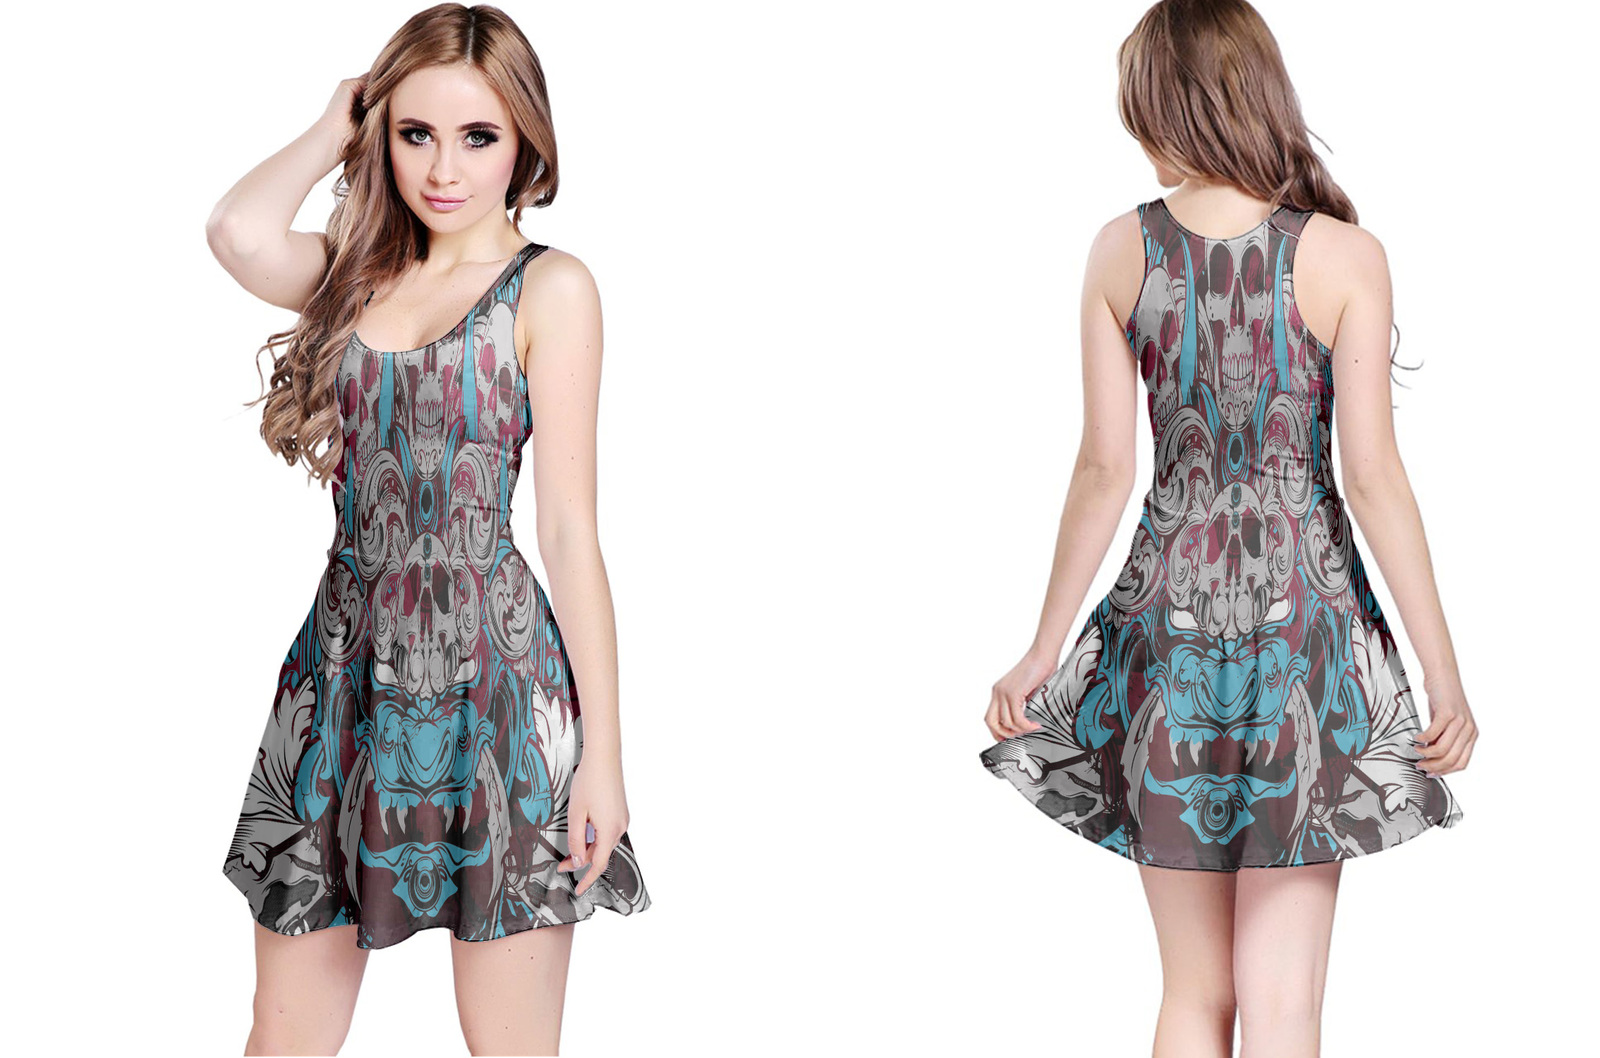 Primary image for Tatoo Collection #2 Women's Reversible Dress